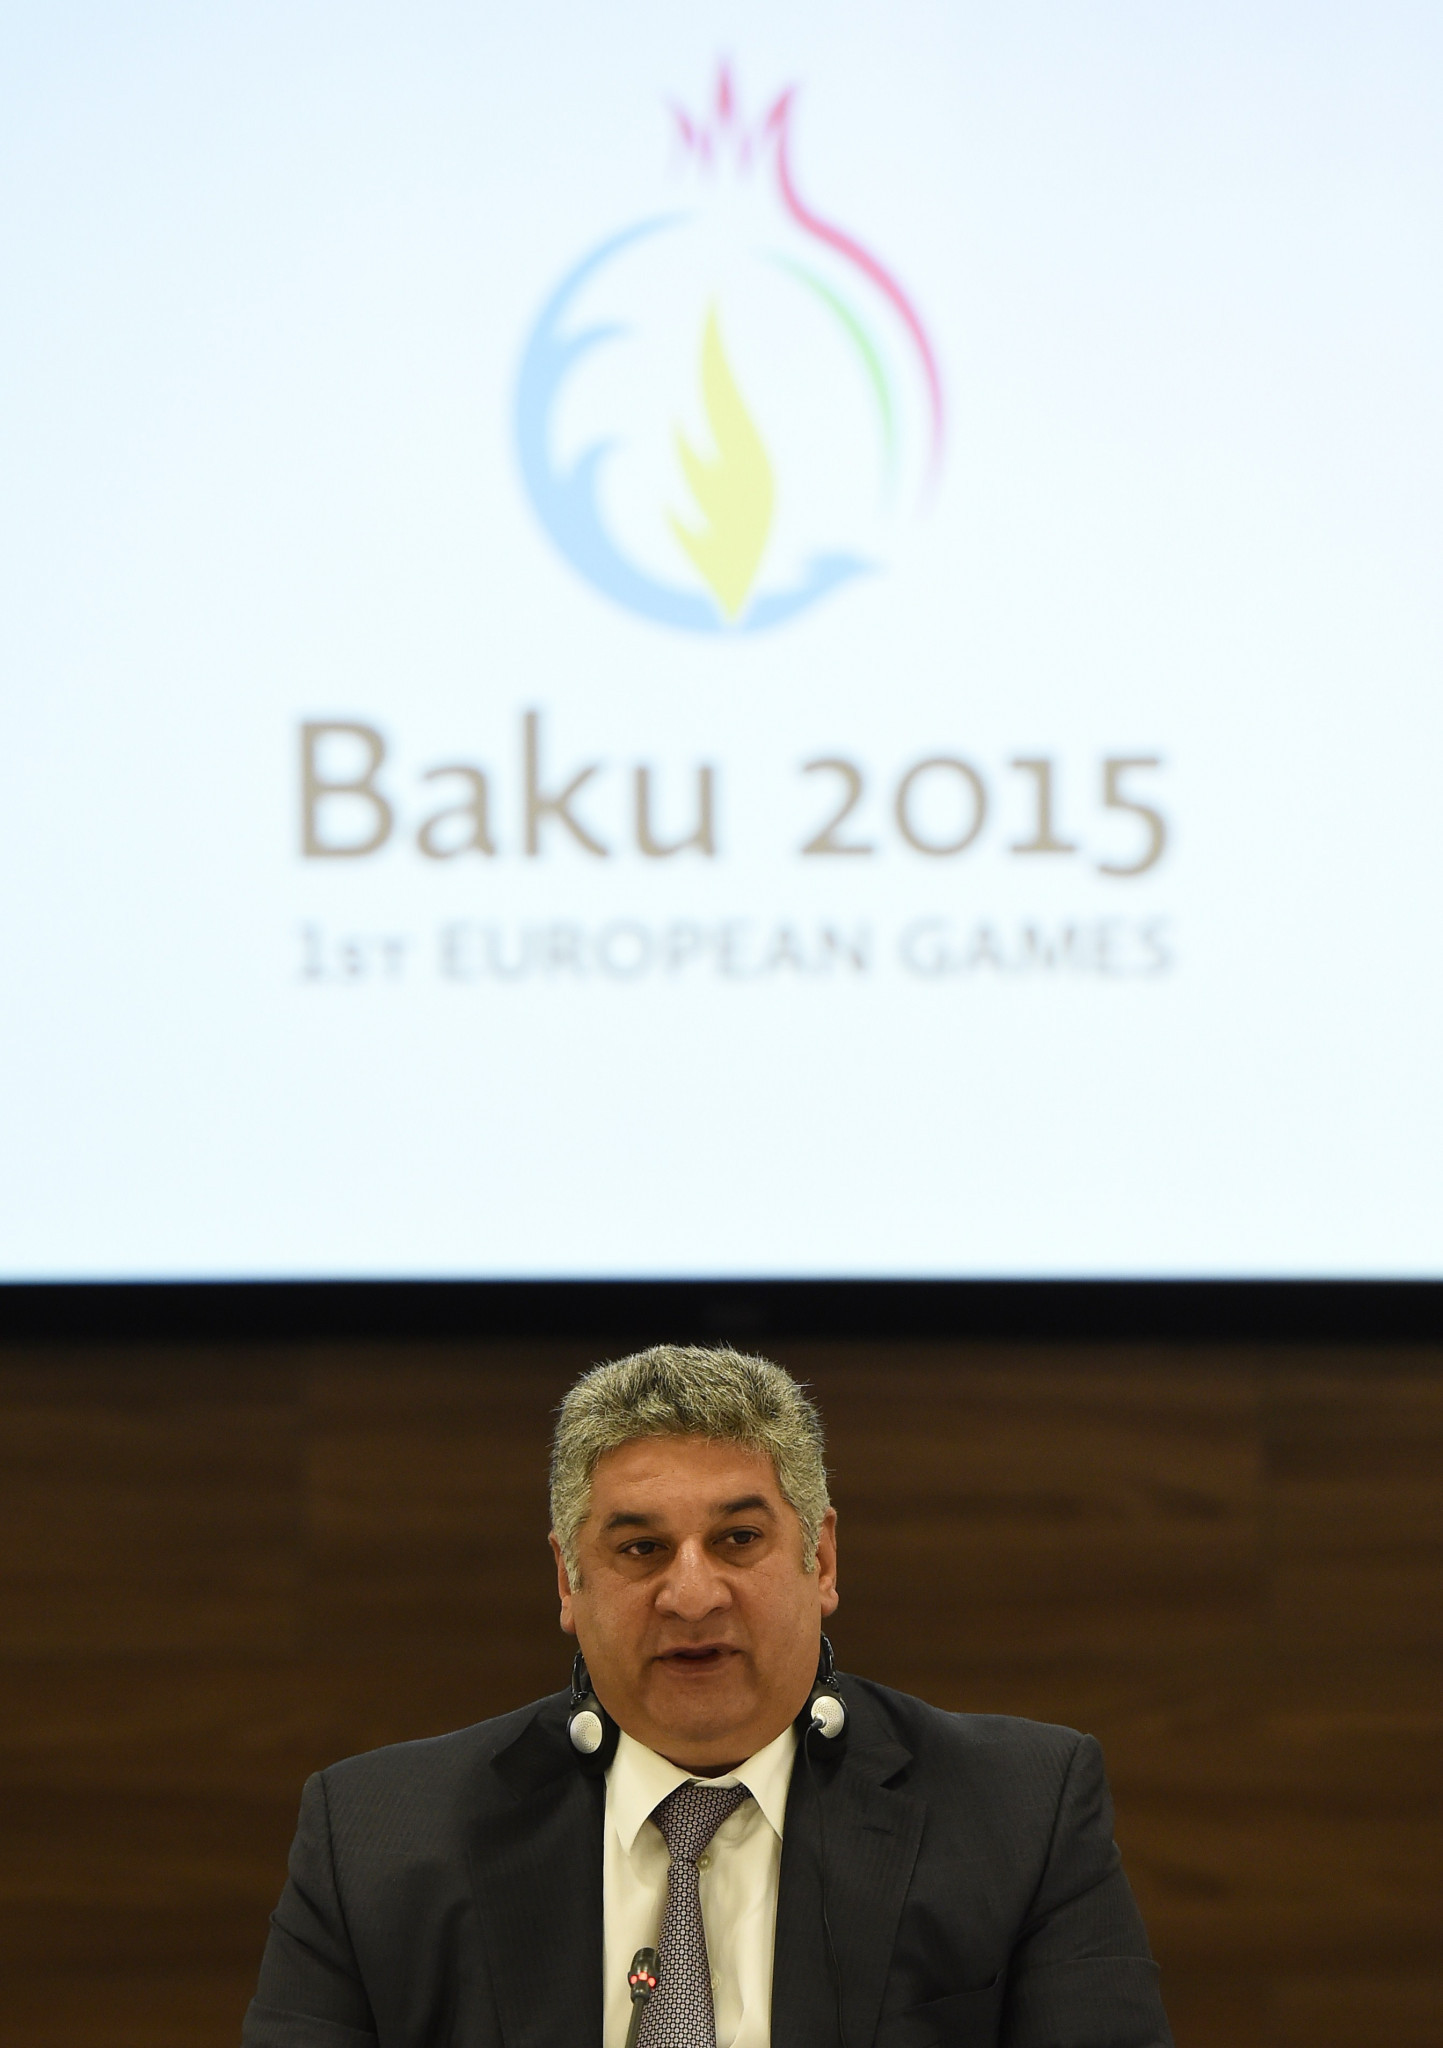 Azad Rahimov played a leading role in the organisation of the first European Games at Baku in 2015 ©Getty Images